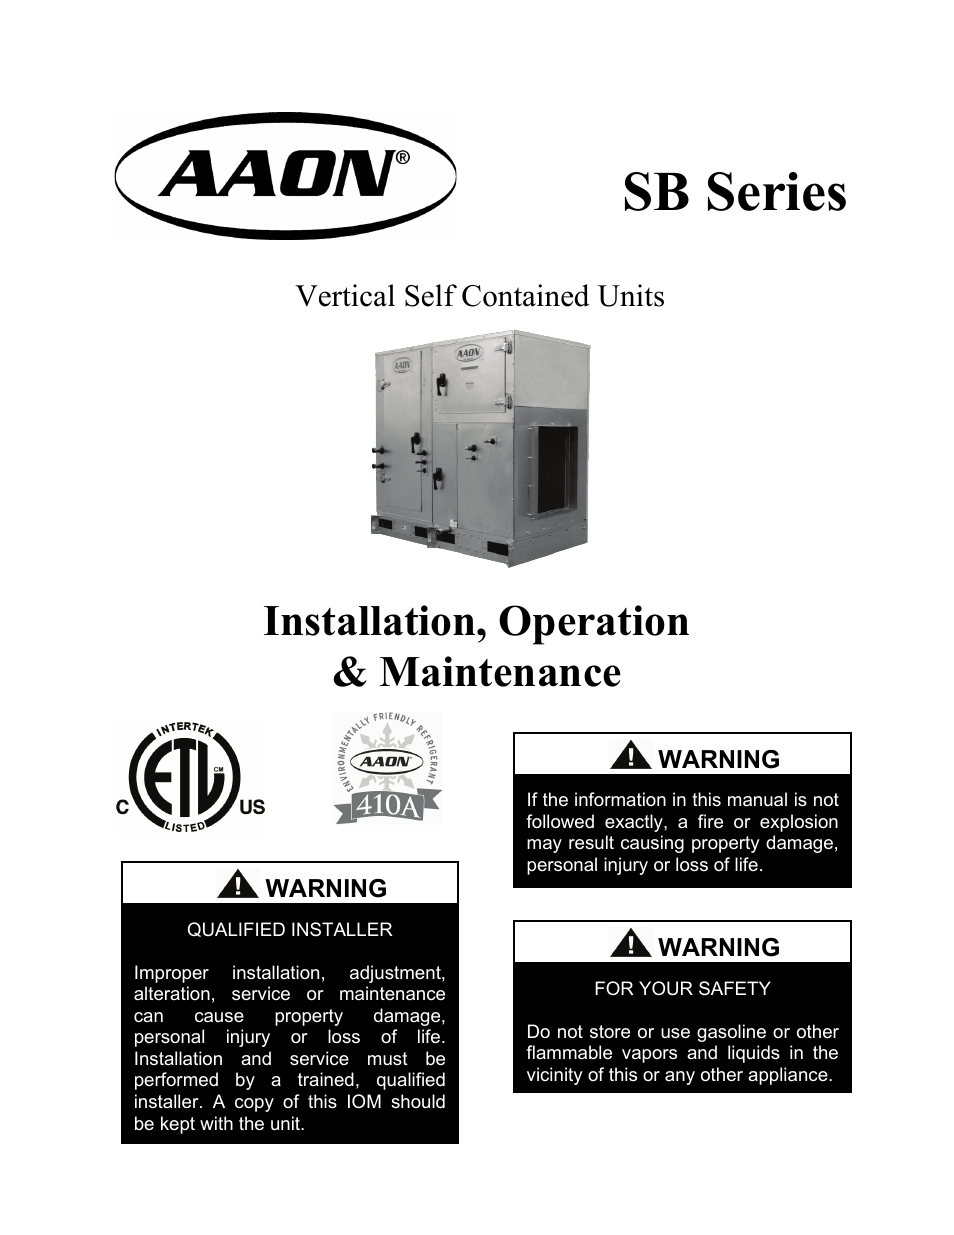 aaon rm series service manual